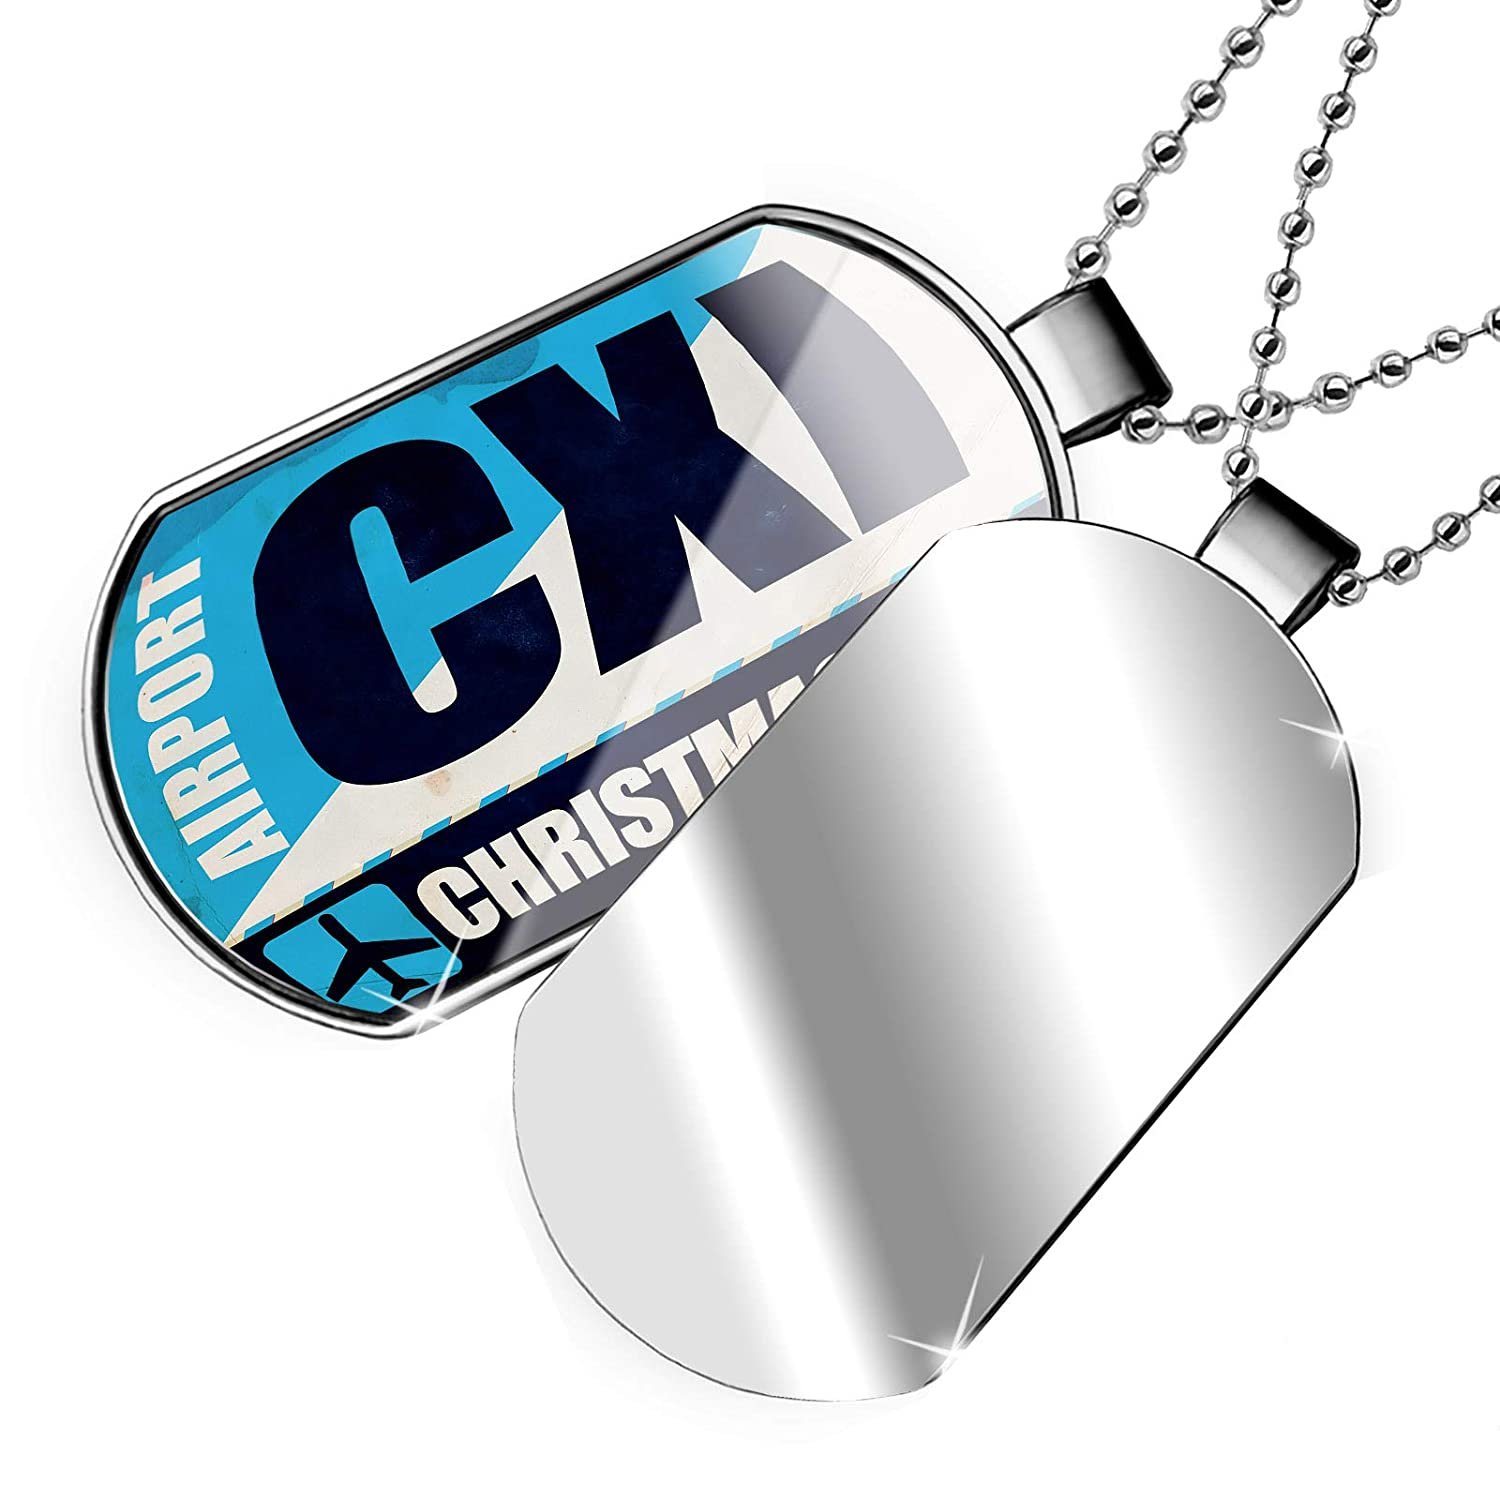 NEONBLOND Personalized Name Engraved Airportcode CXI Christmas Line Dogtag Necklace